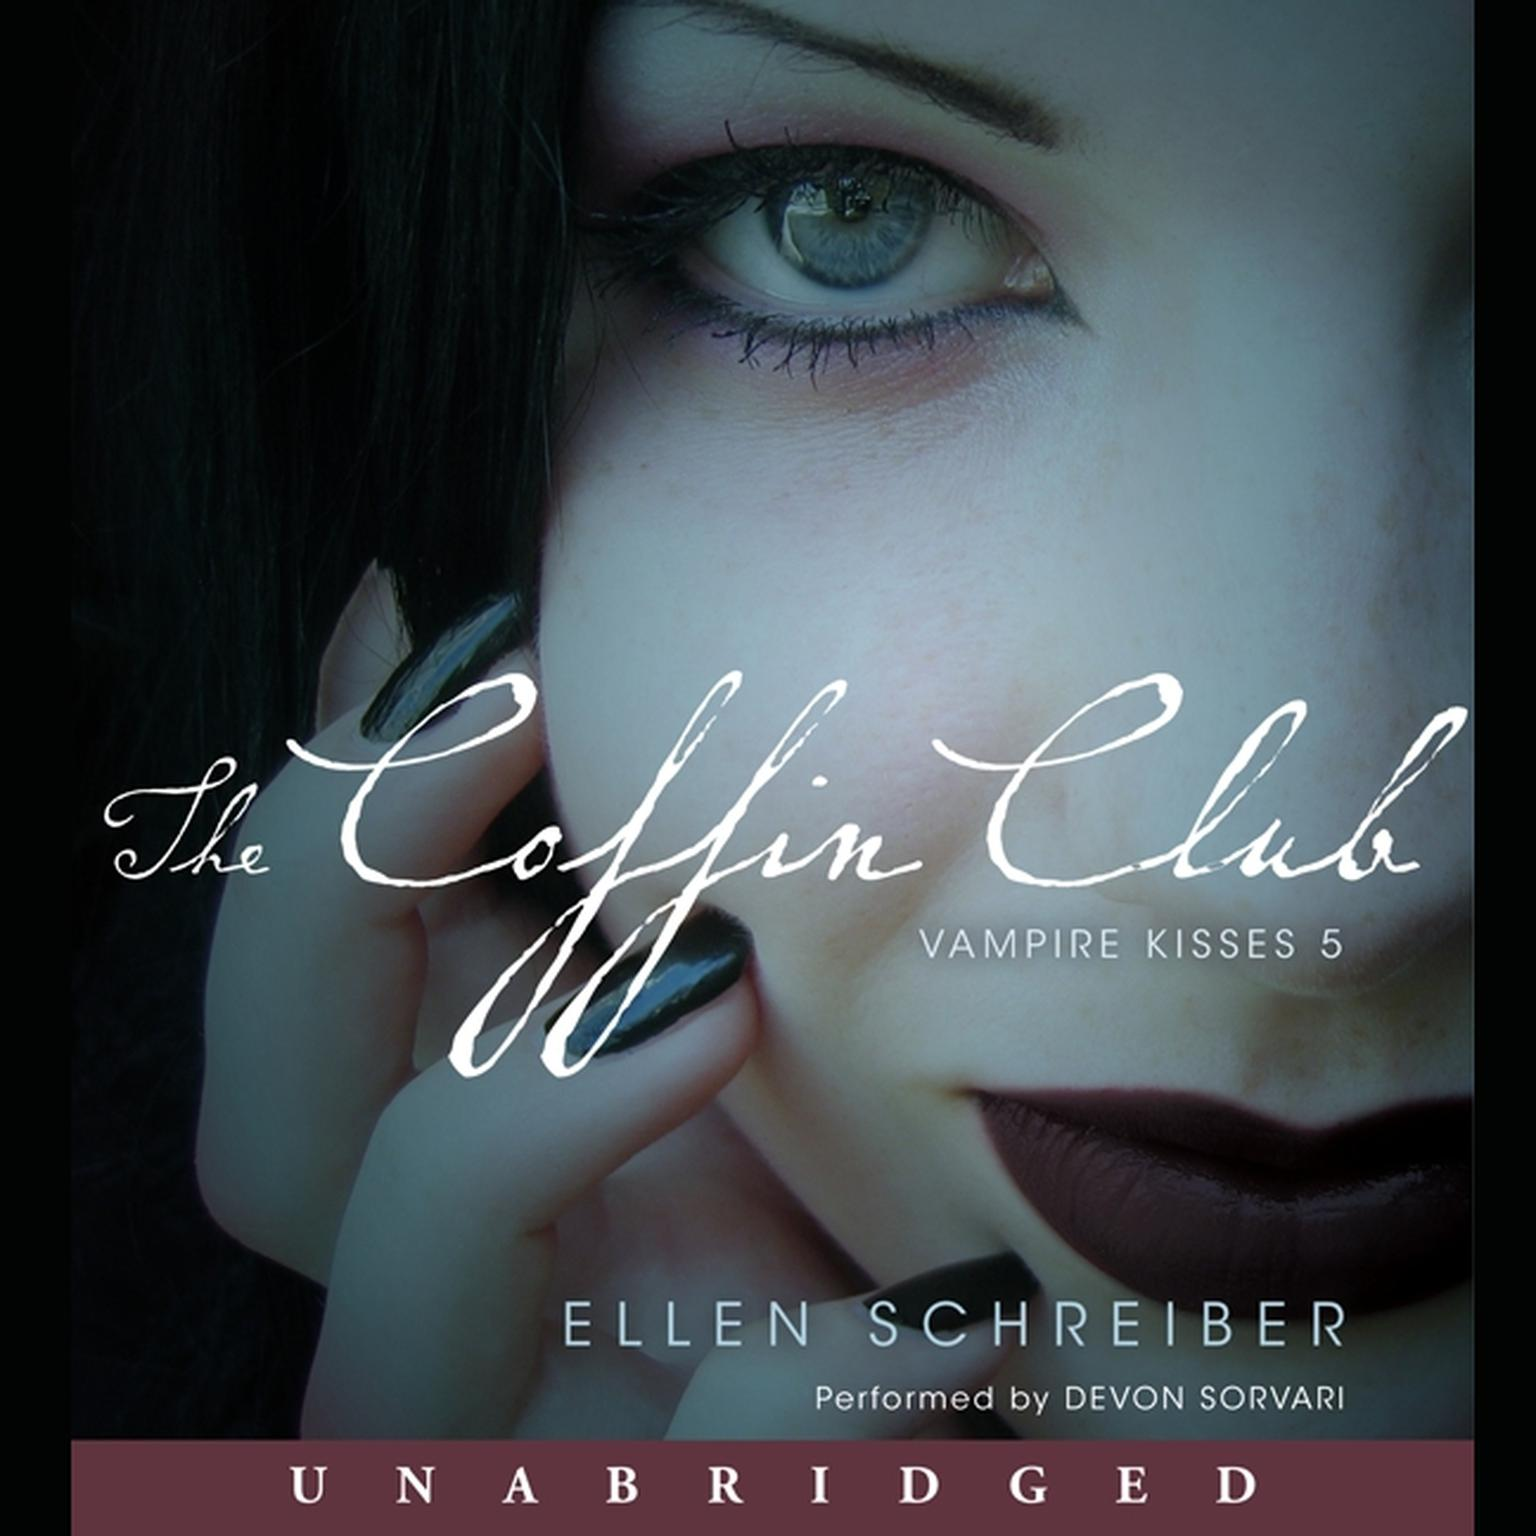 Printable Vampire Kisses 5: The Coffin Club: Vampire Kisses 5 Audiobook Cover Art